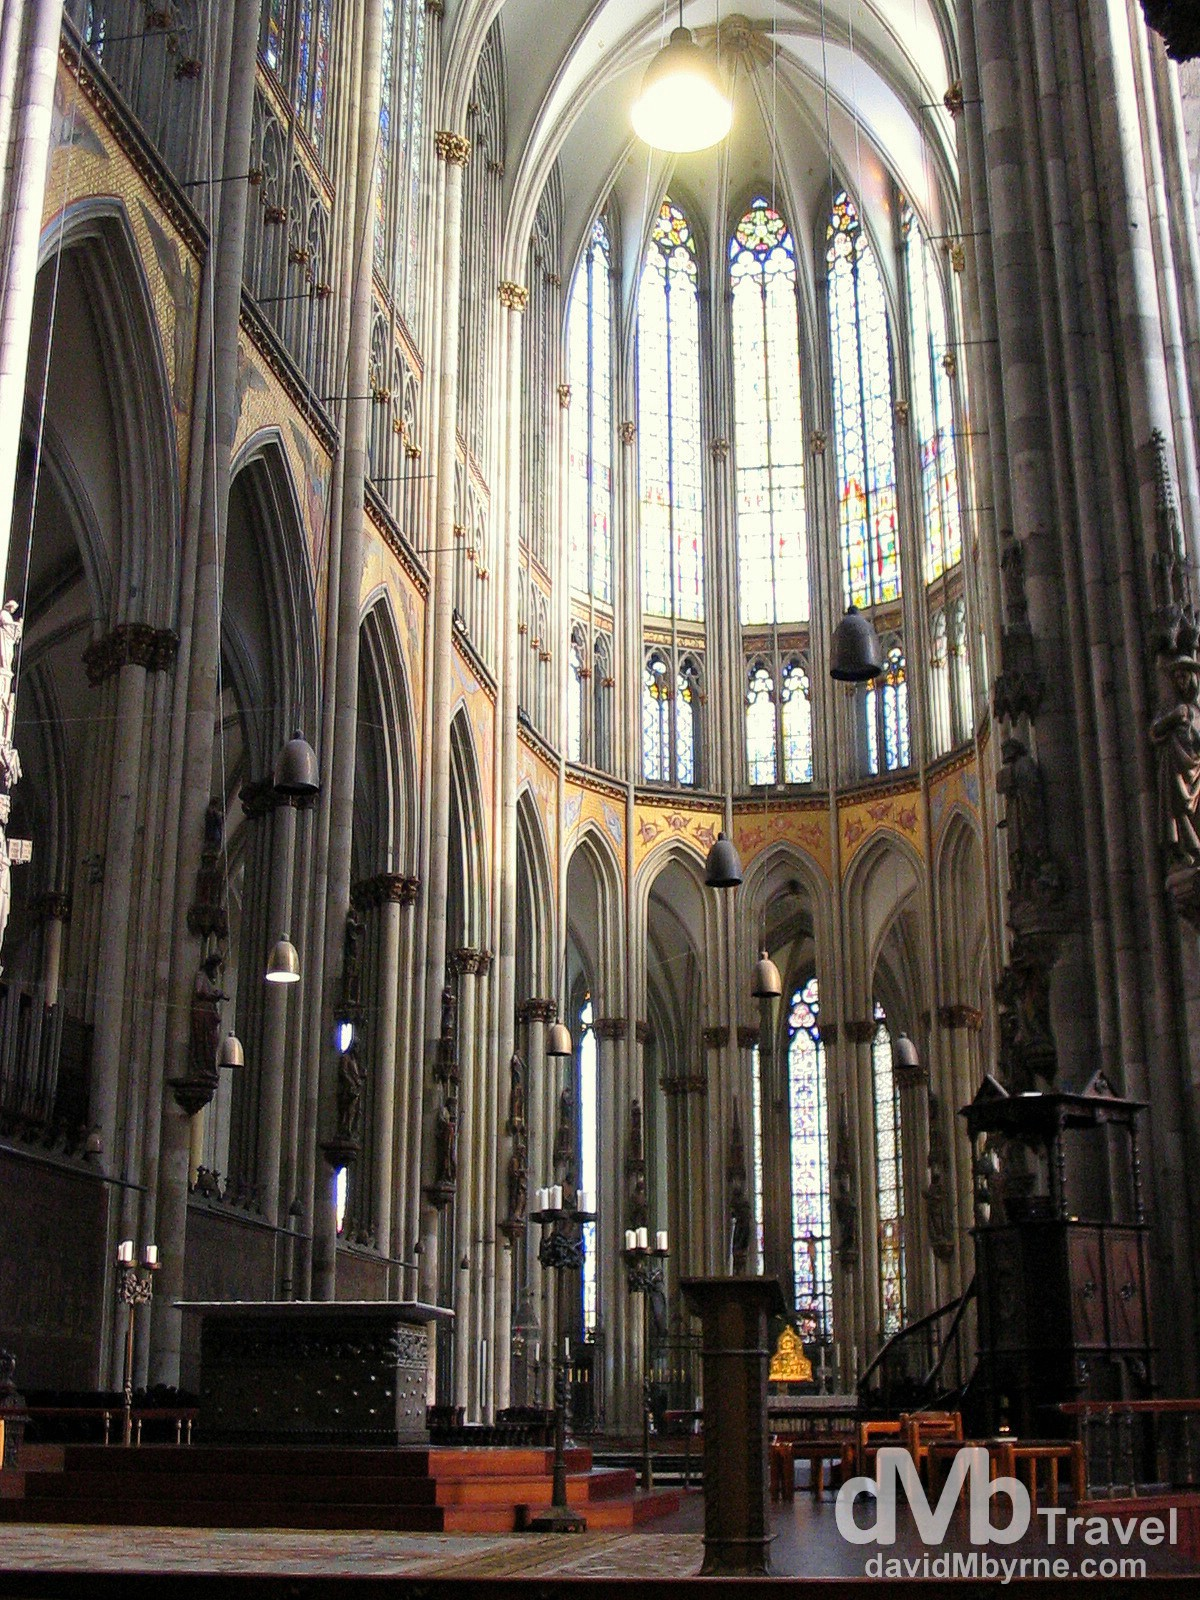 The interior of Cologne Cathedral (Köln Dom), Cologne, Germany. February 16th 2005.